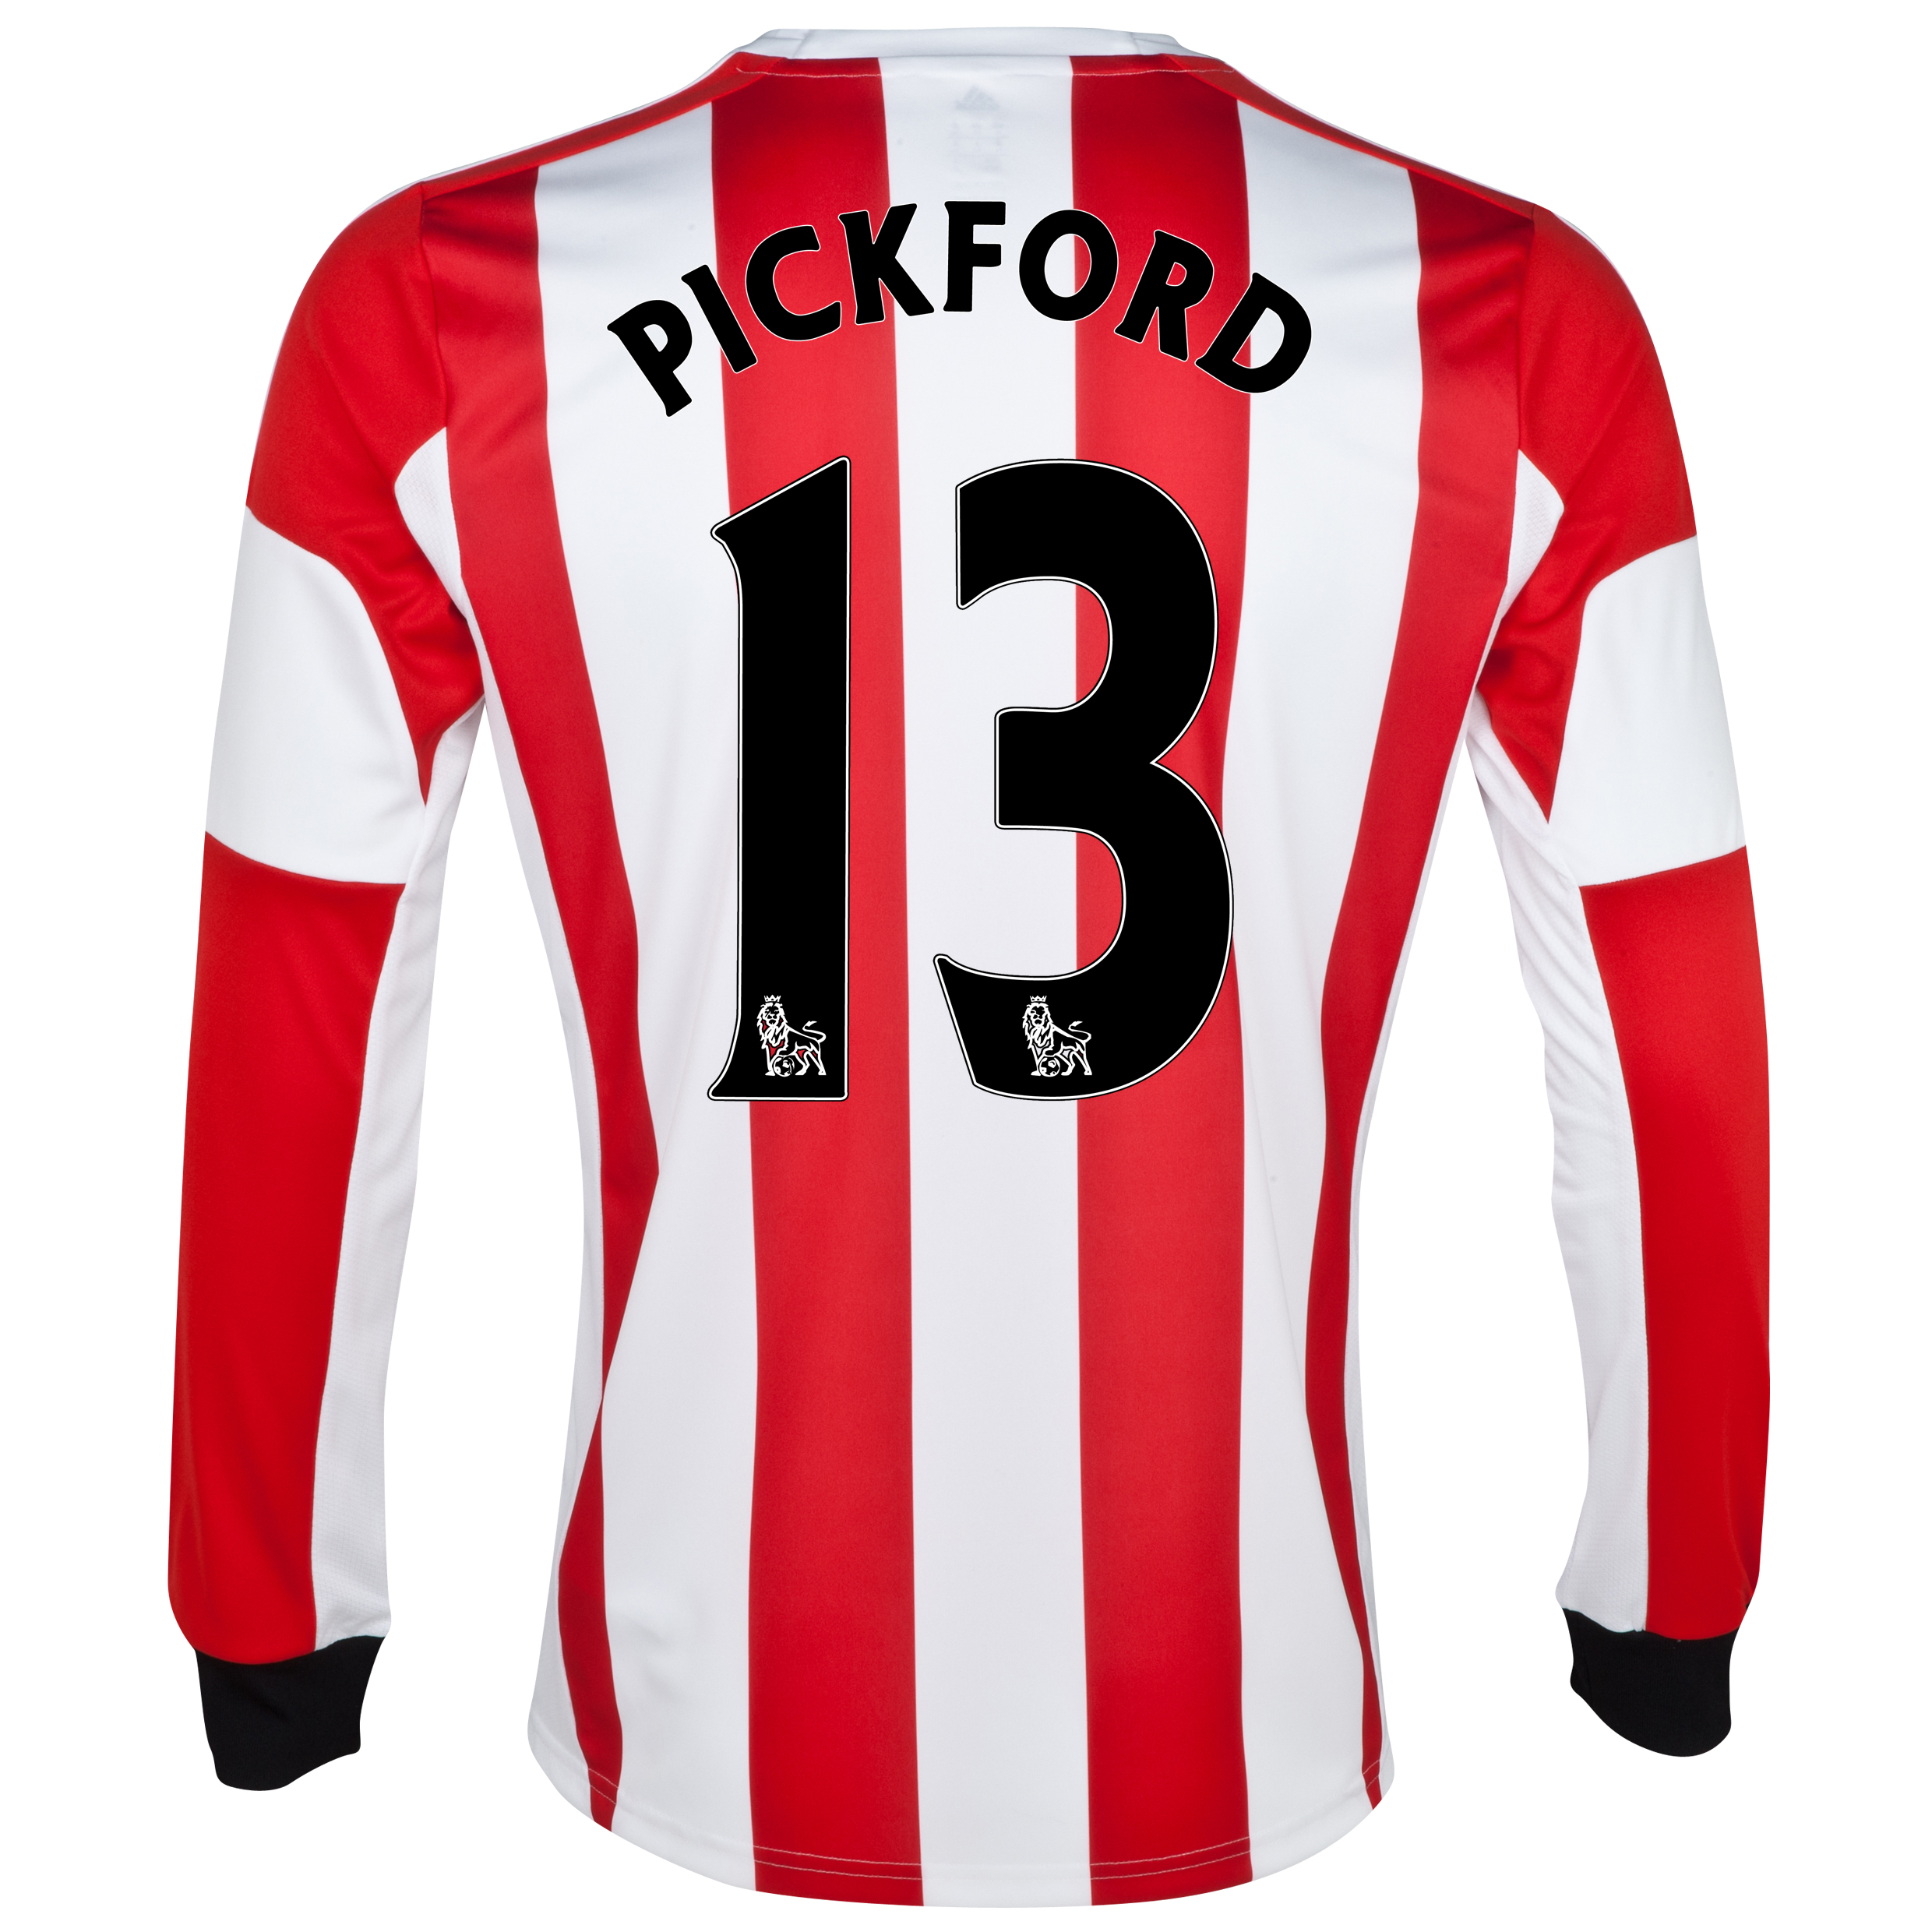 Sunderland Home Shirt 2013/14 - Long Sleeved with Pickford 13 printing